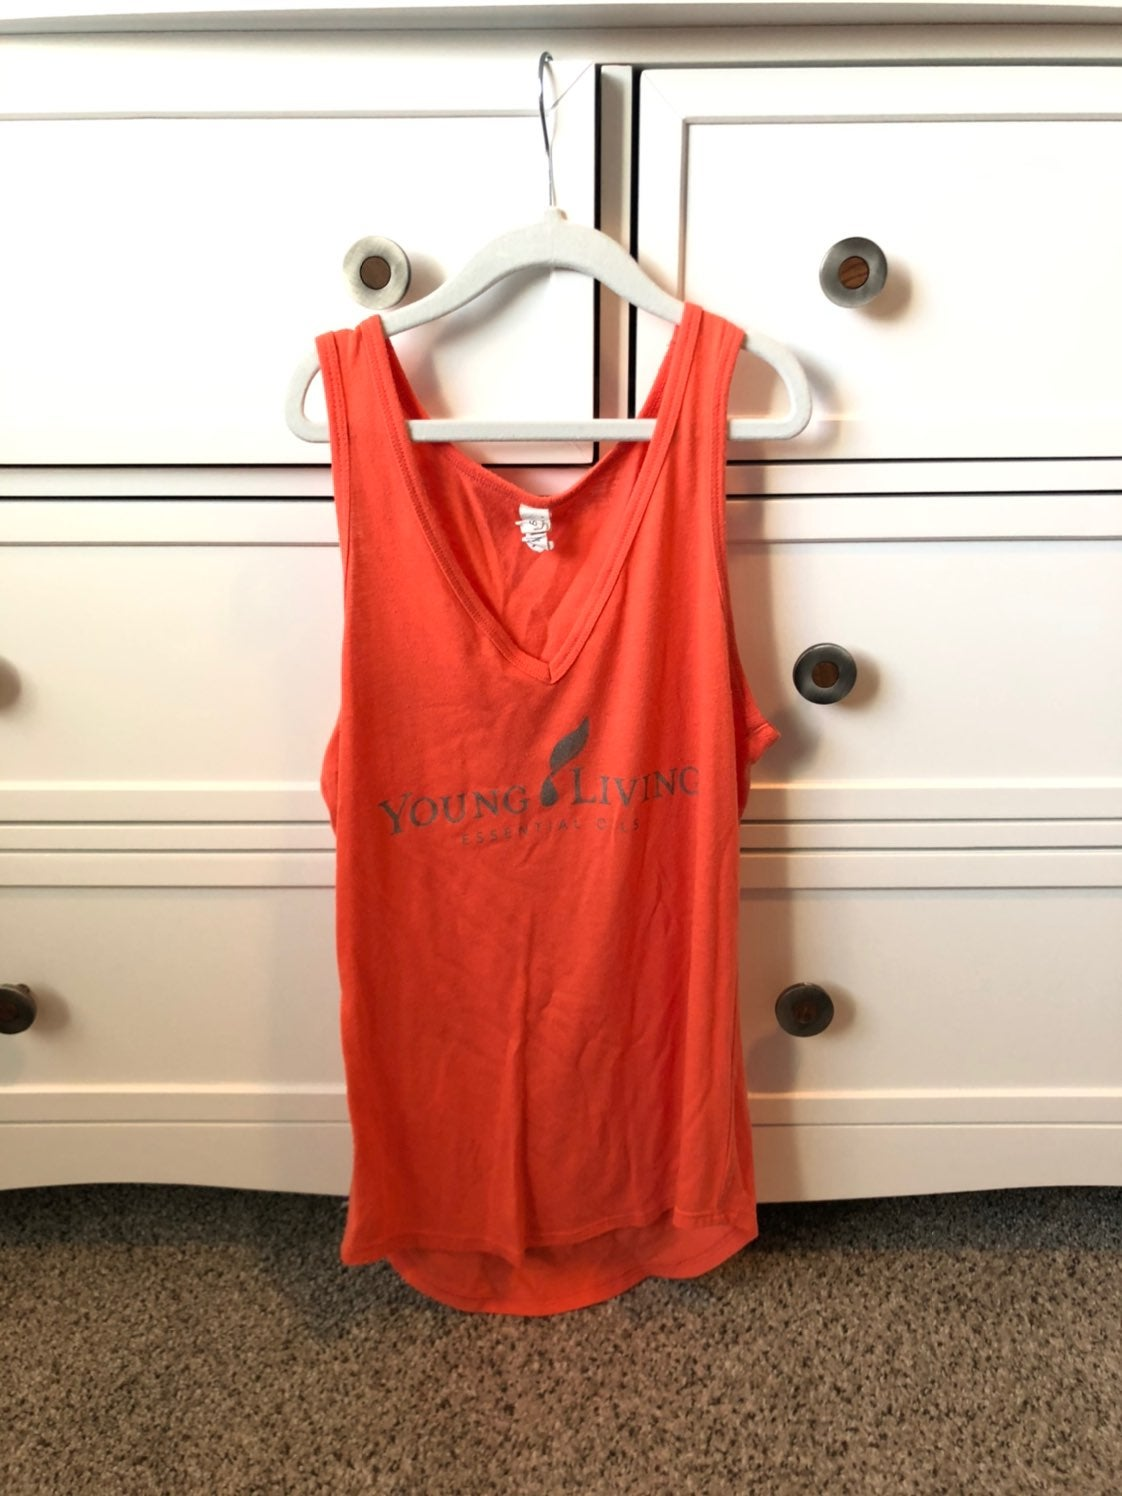 Young Living Tank Top